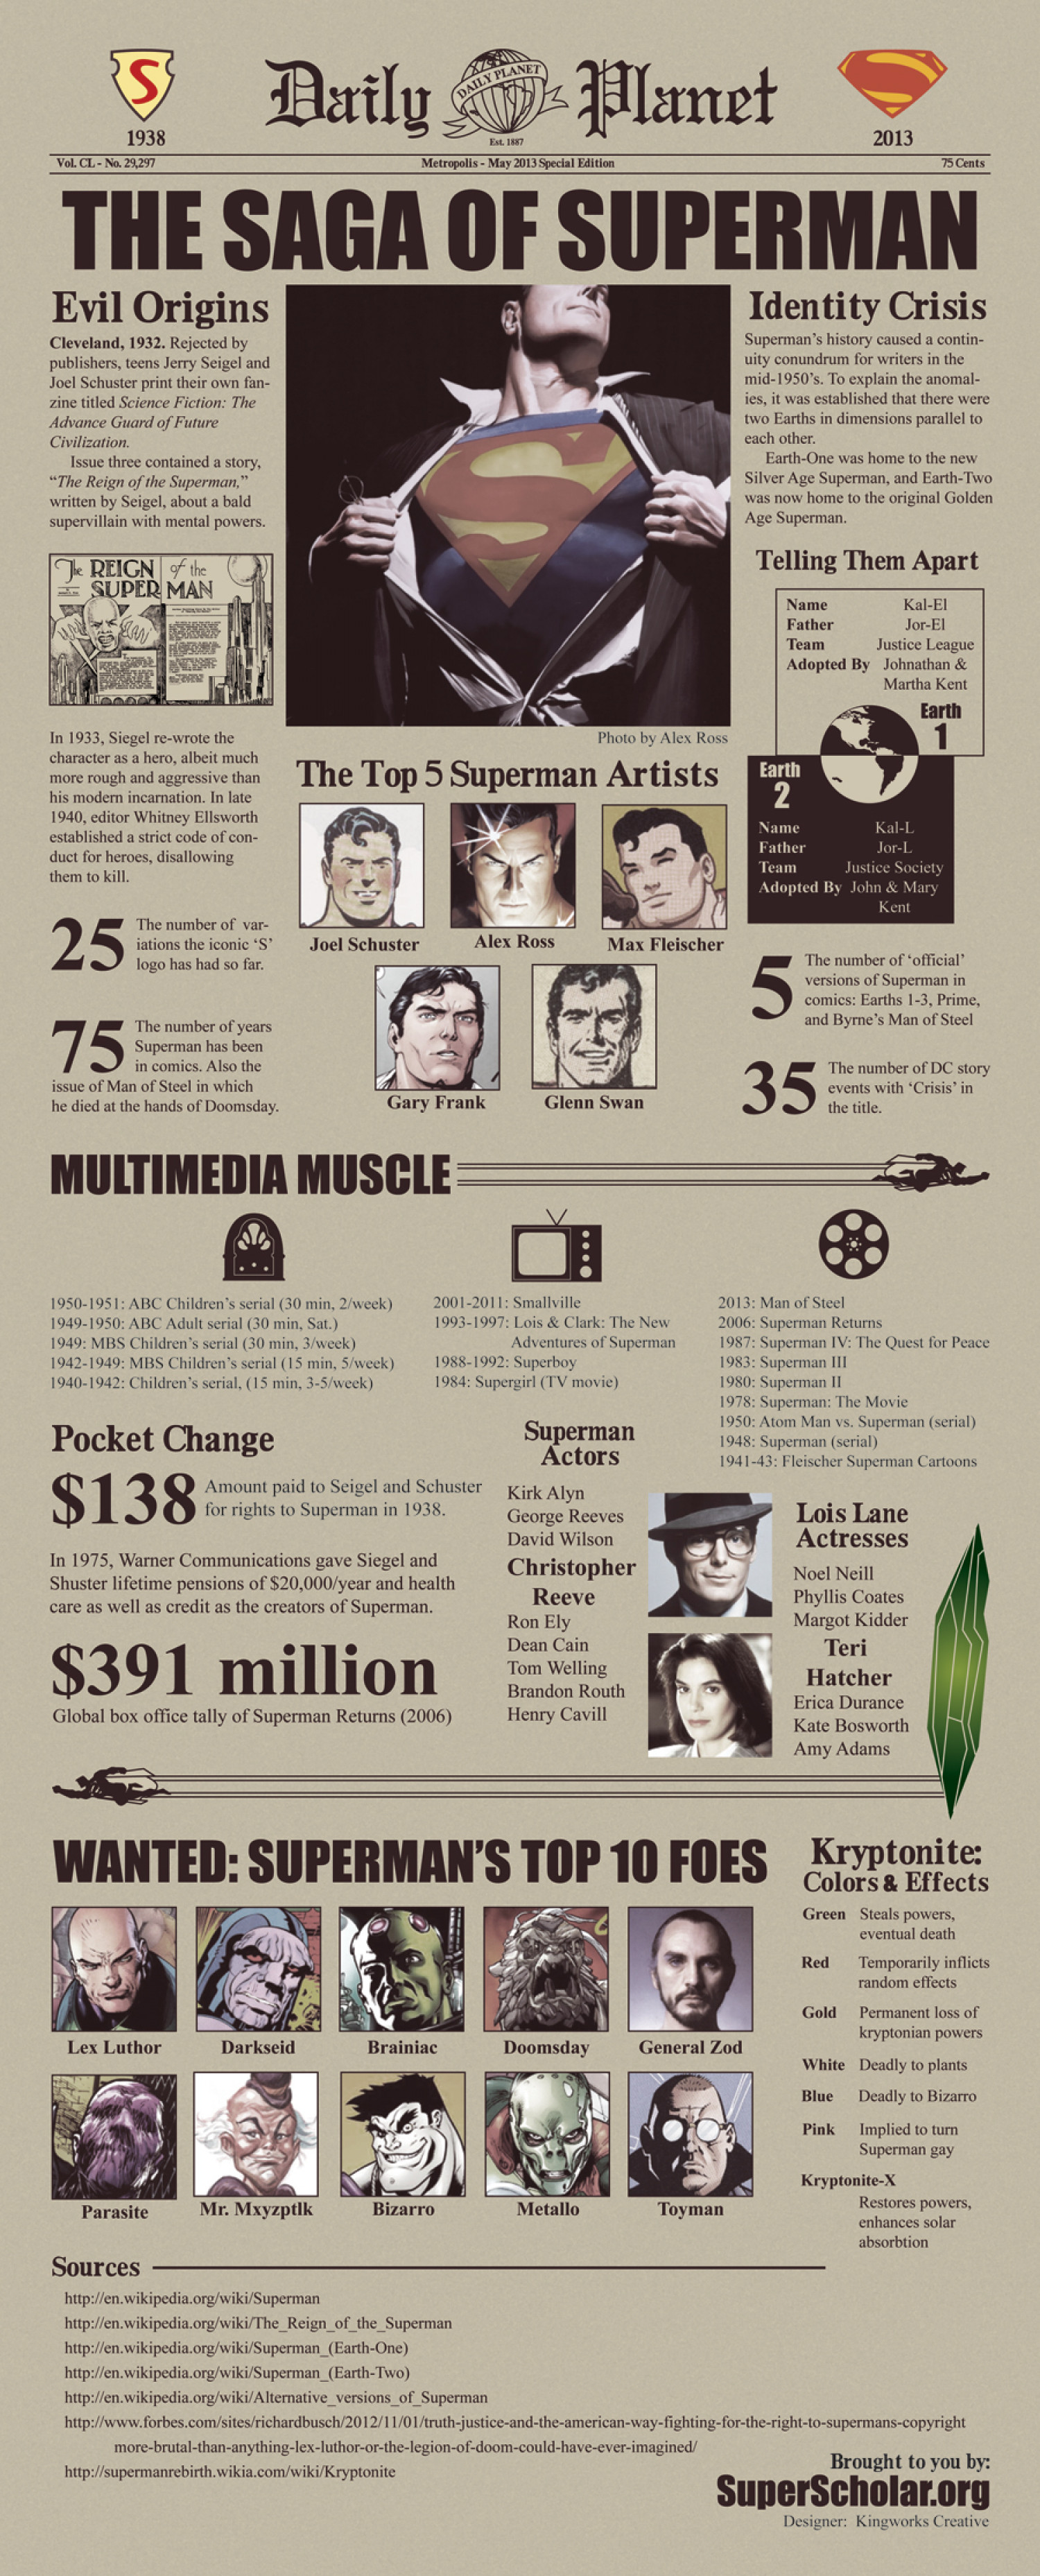 The Saga of Superman Infographic